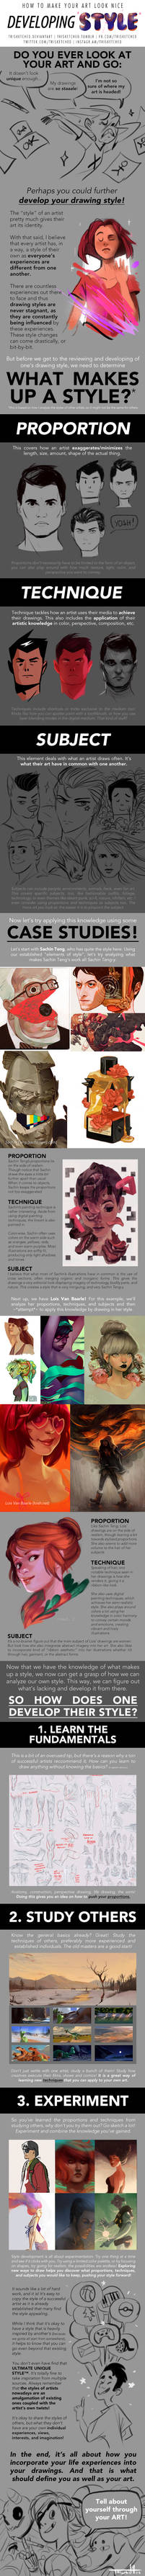 HOW TO MAKE YOUR ART LOOK NICE: Developing Style